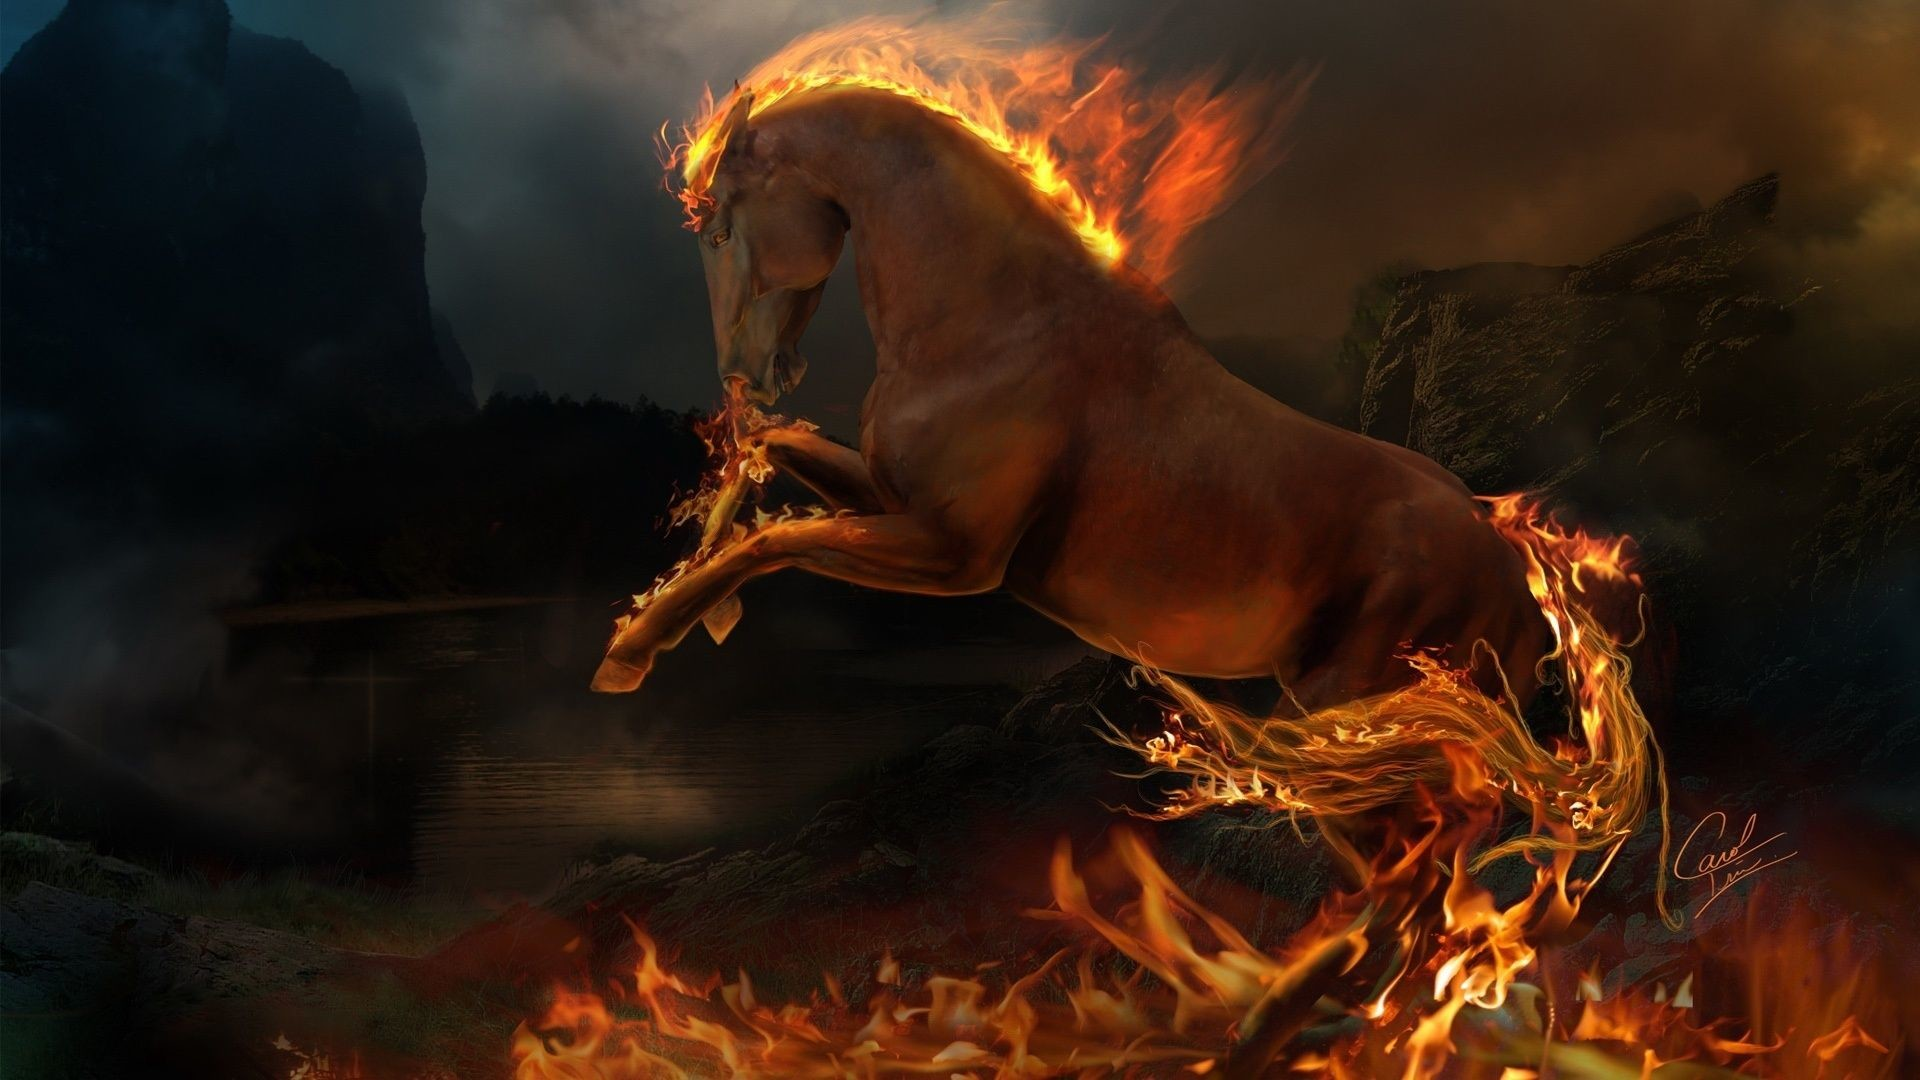 1920x1080 Horse Jumping, Fire, 1920x1080 HD Wallpaper And FREE Stock Photo